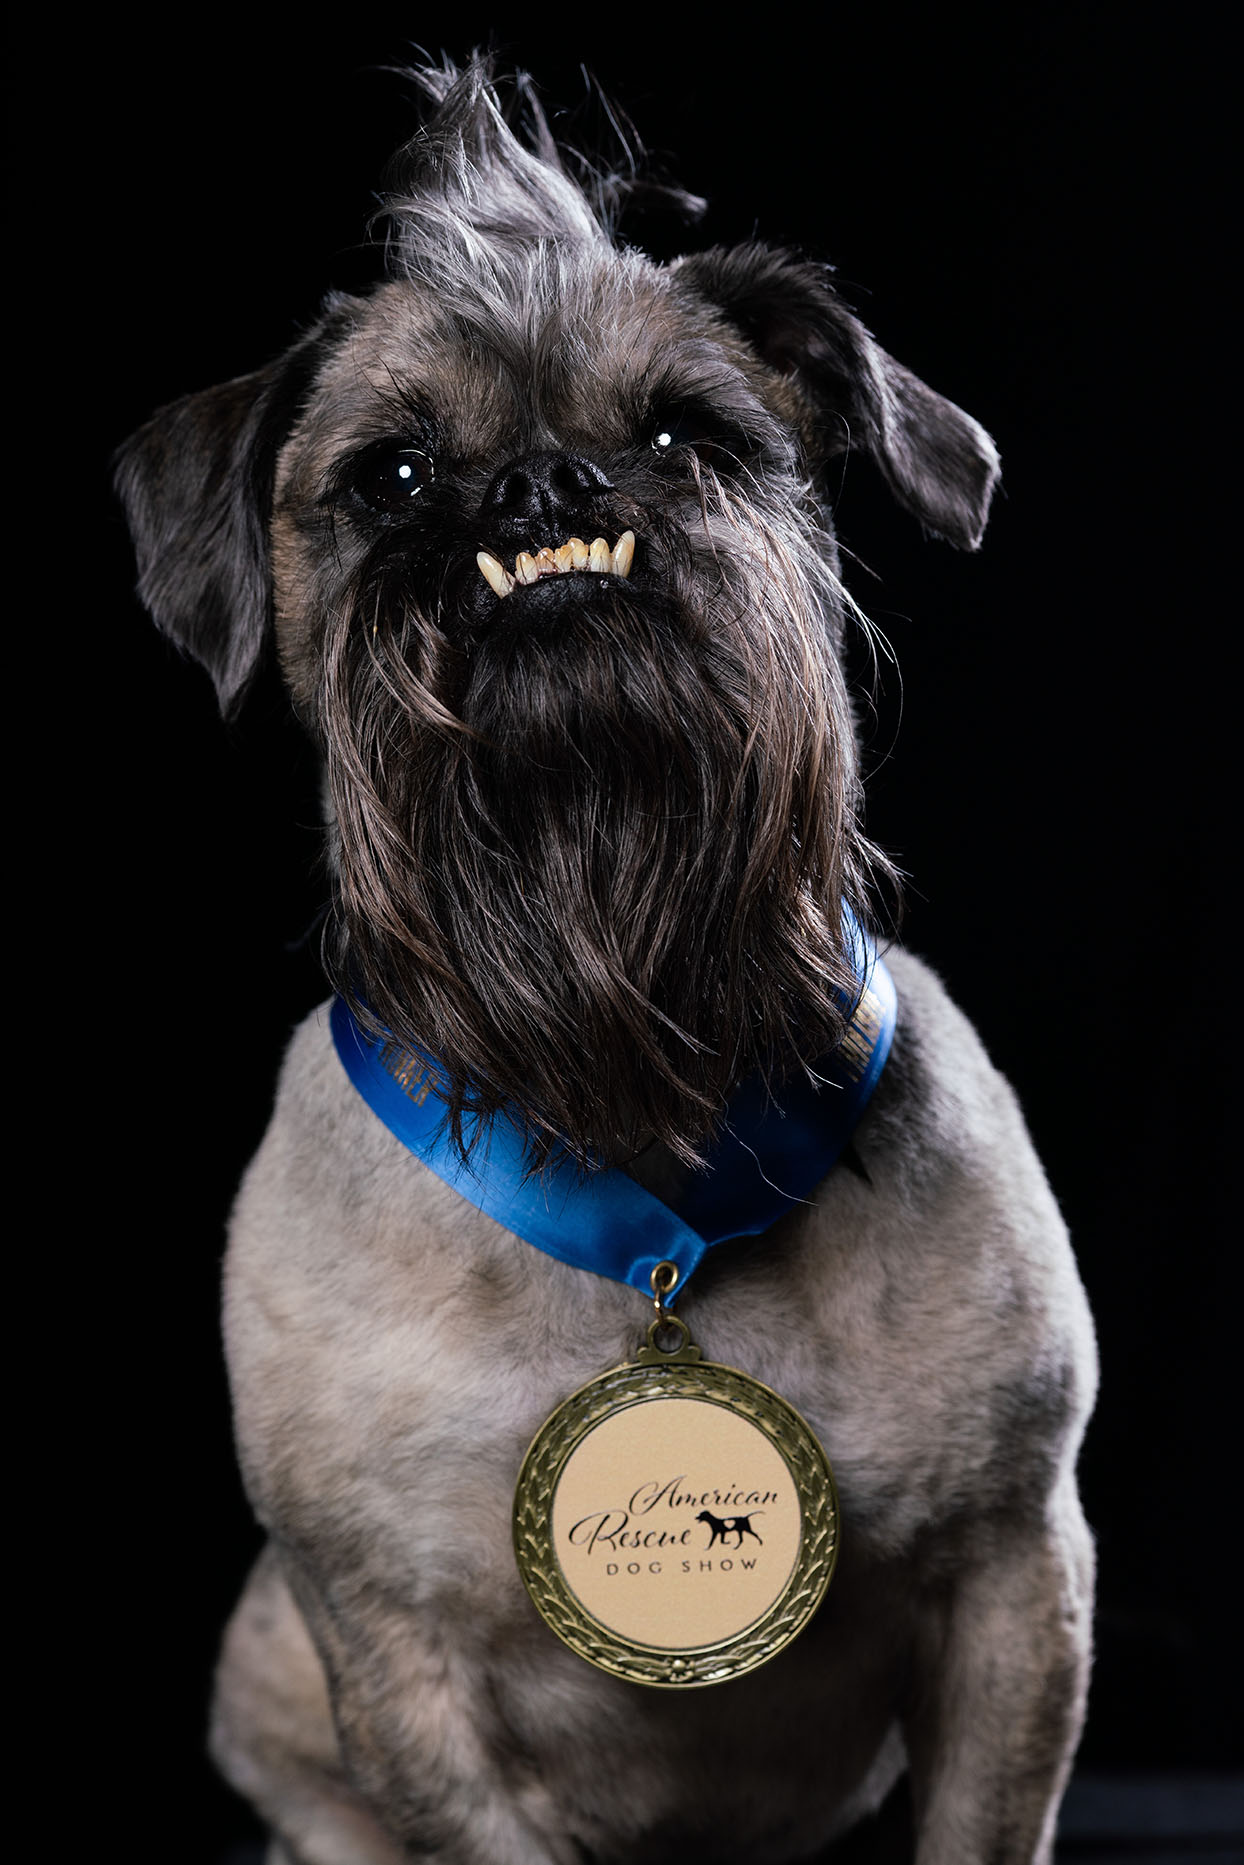 grey dog with an underbite wearing a dog show medal